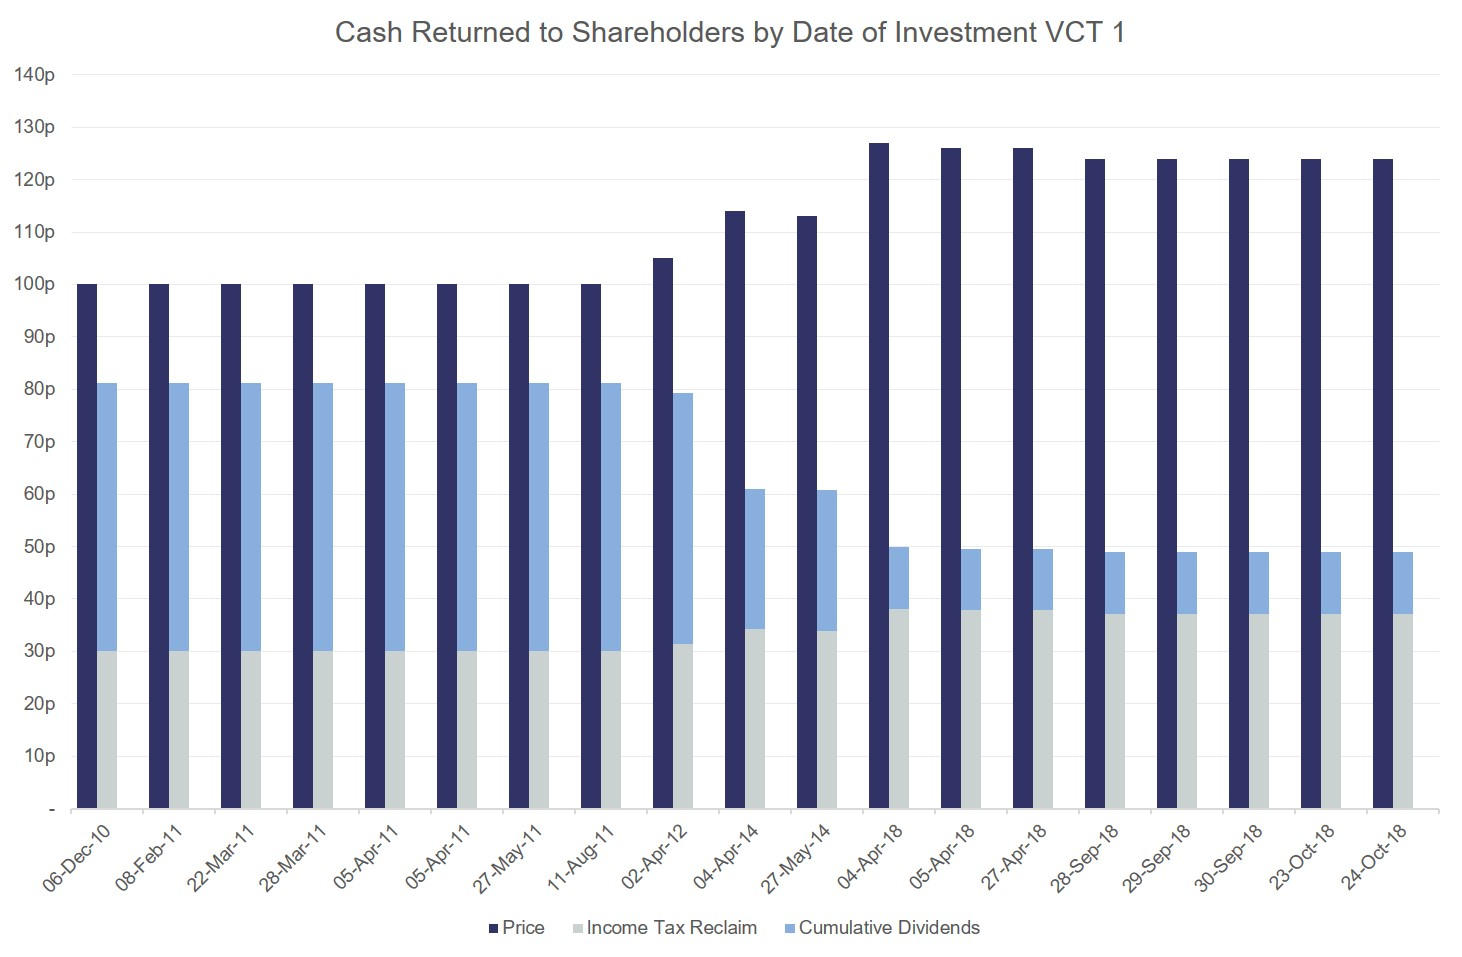 cash returned to shareholders by date of investment VCT 1